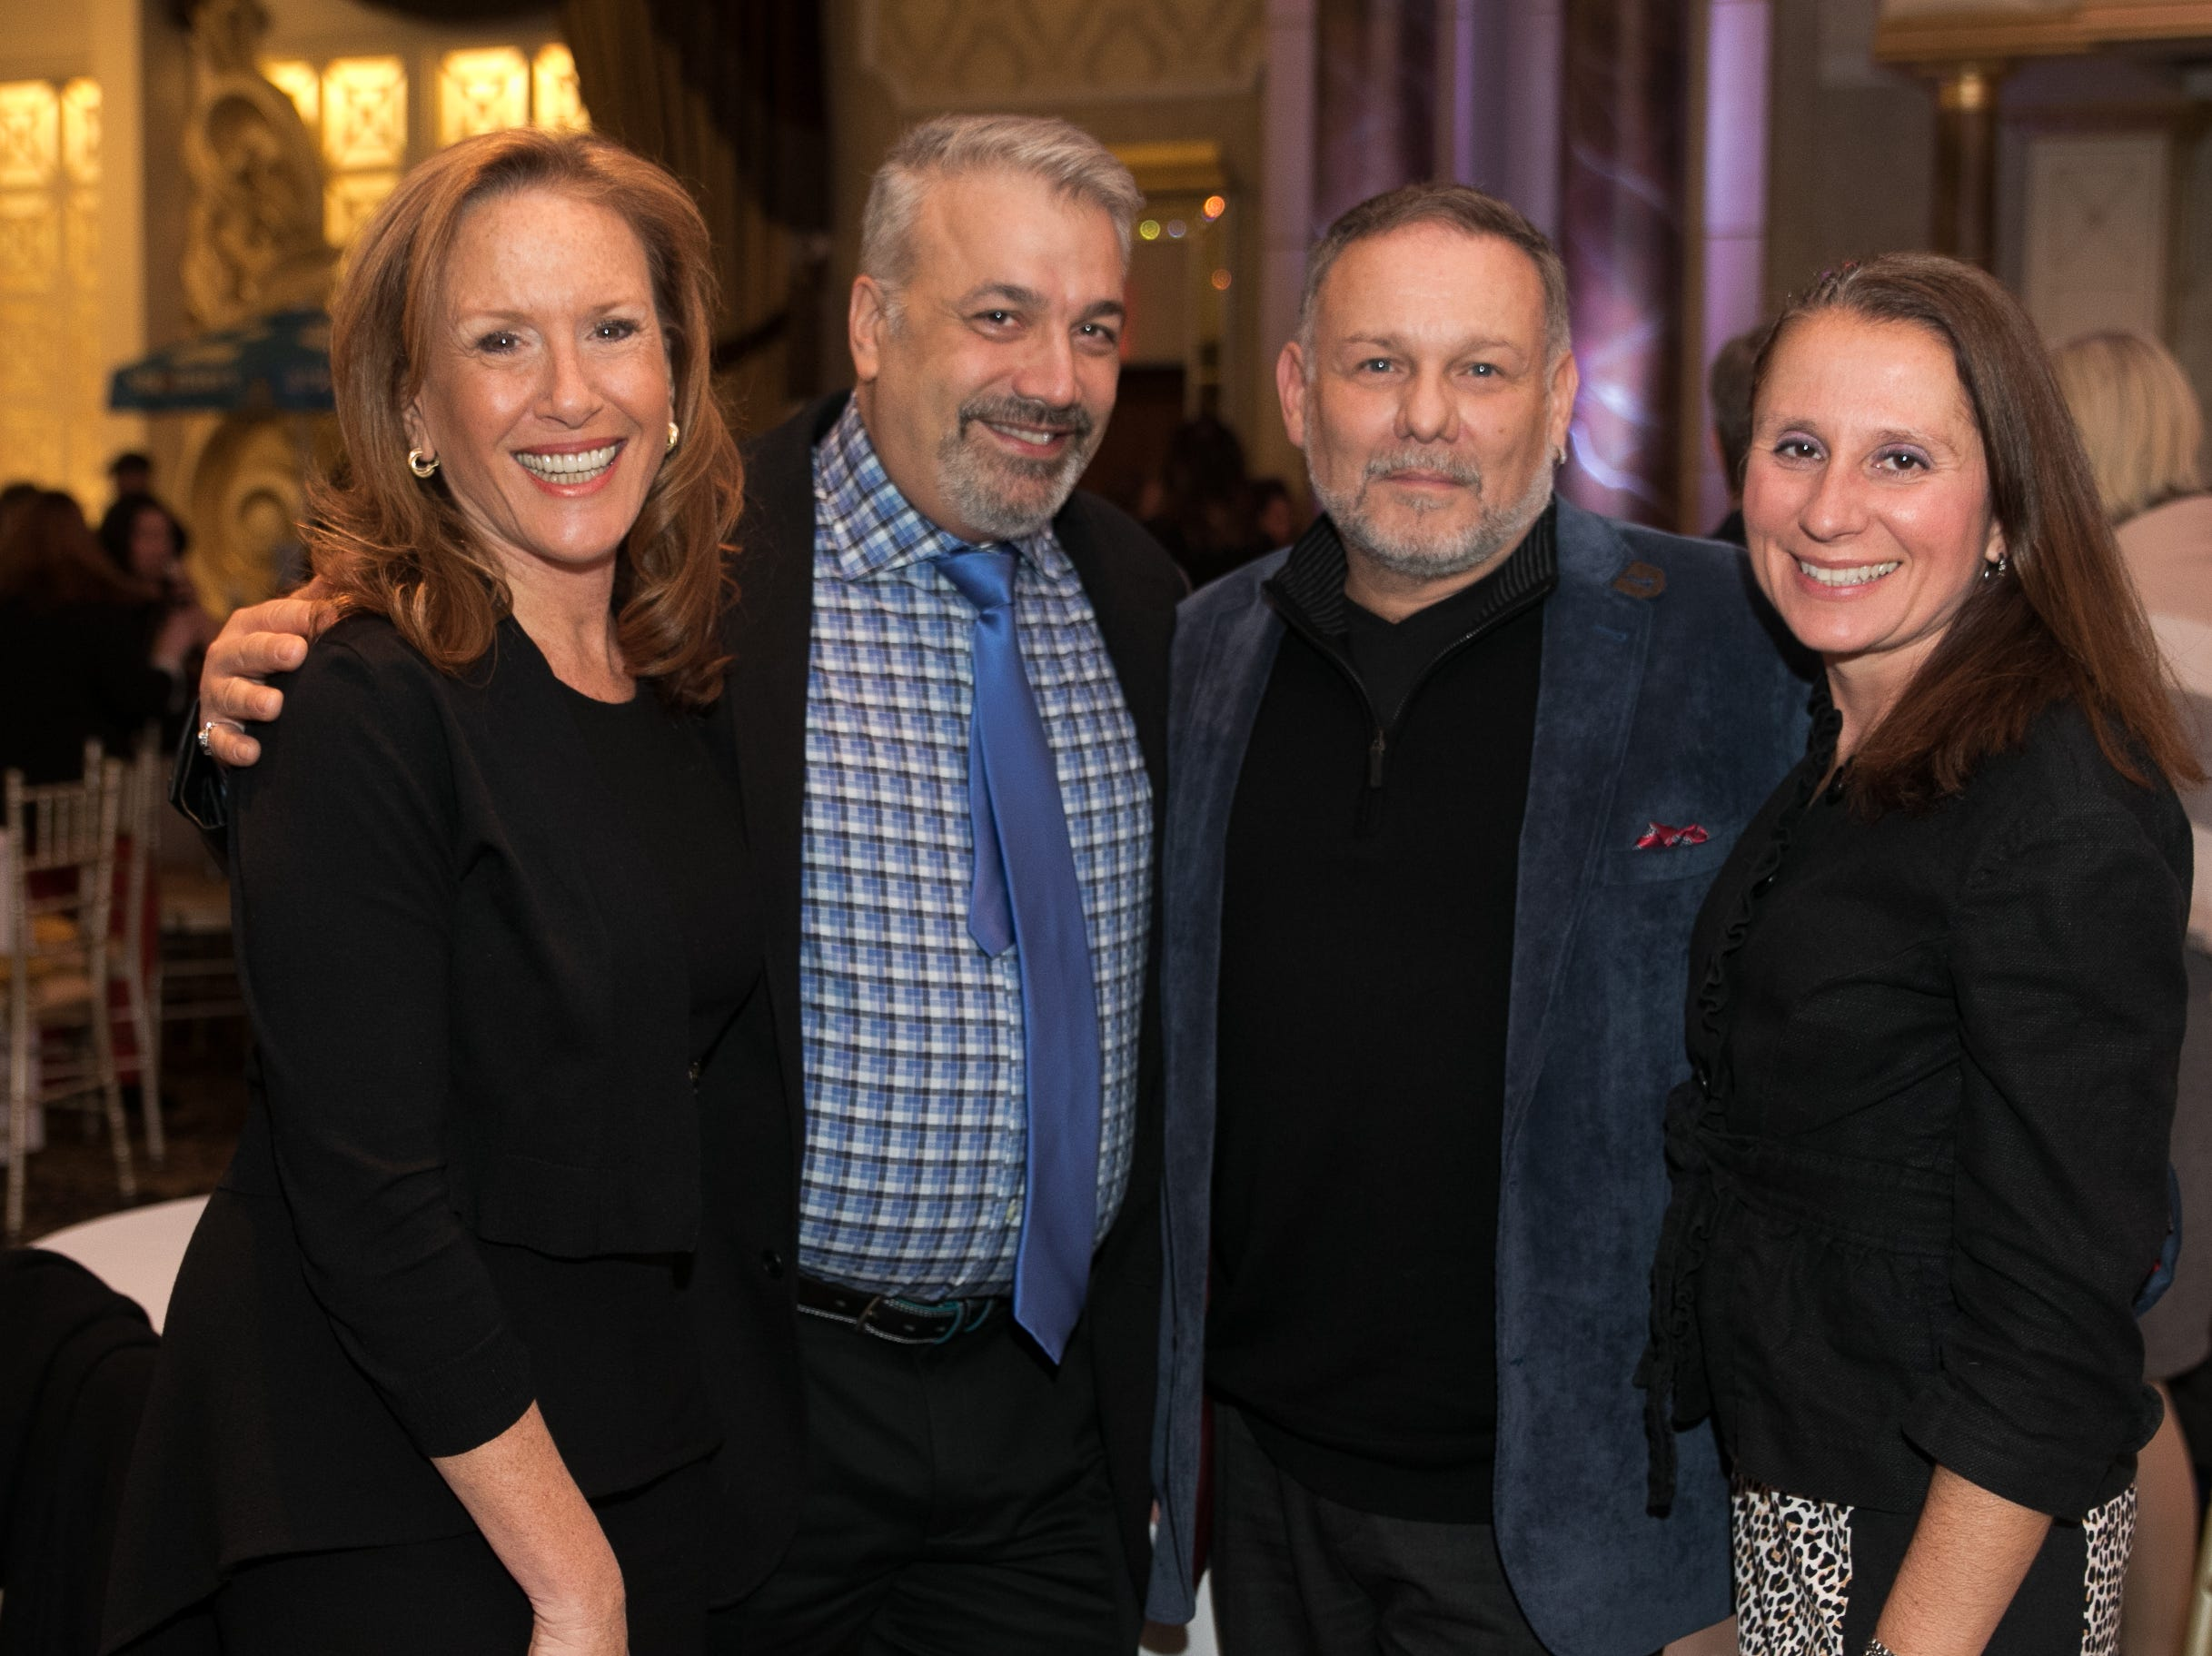 """Patti Kanner, Mark Santuoso, Alex Zaldivar, Sue Figalora. The New Bridge Medical Center Foundation held its 10th Annual """"A Taste of Bergen"""" at The Venetian in Garfield. The evening featured celebrity chef Chris Holland, the 2017 Grand Champion of the Food Network's """"Chopped."""" 11/12/2018"""